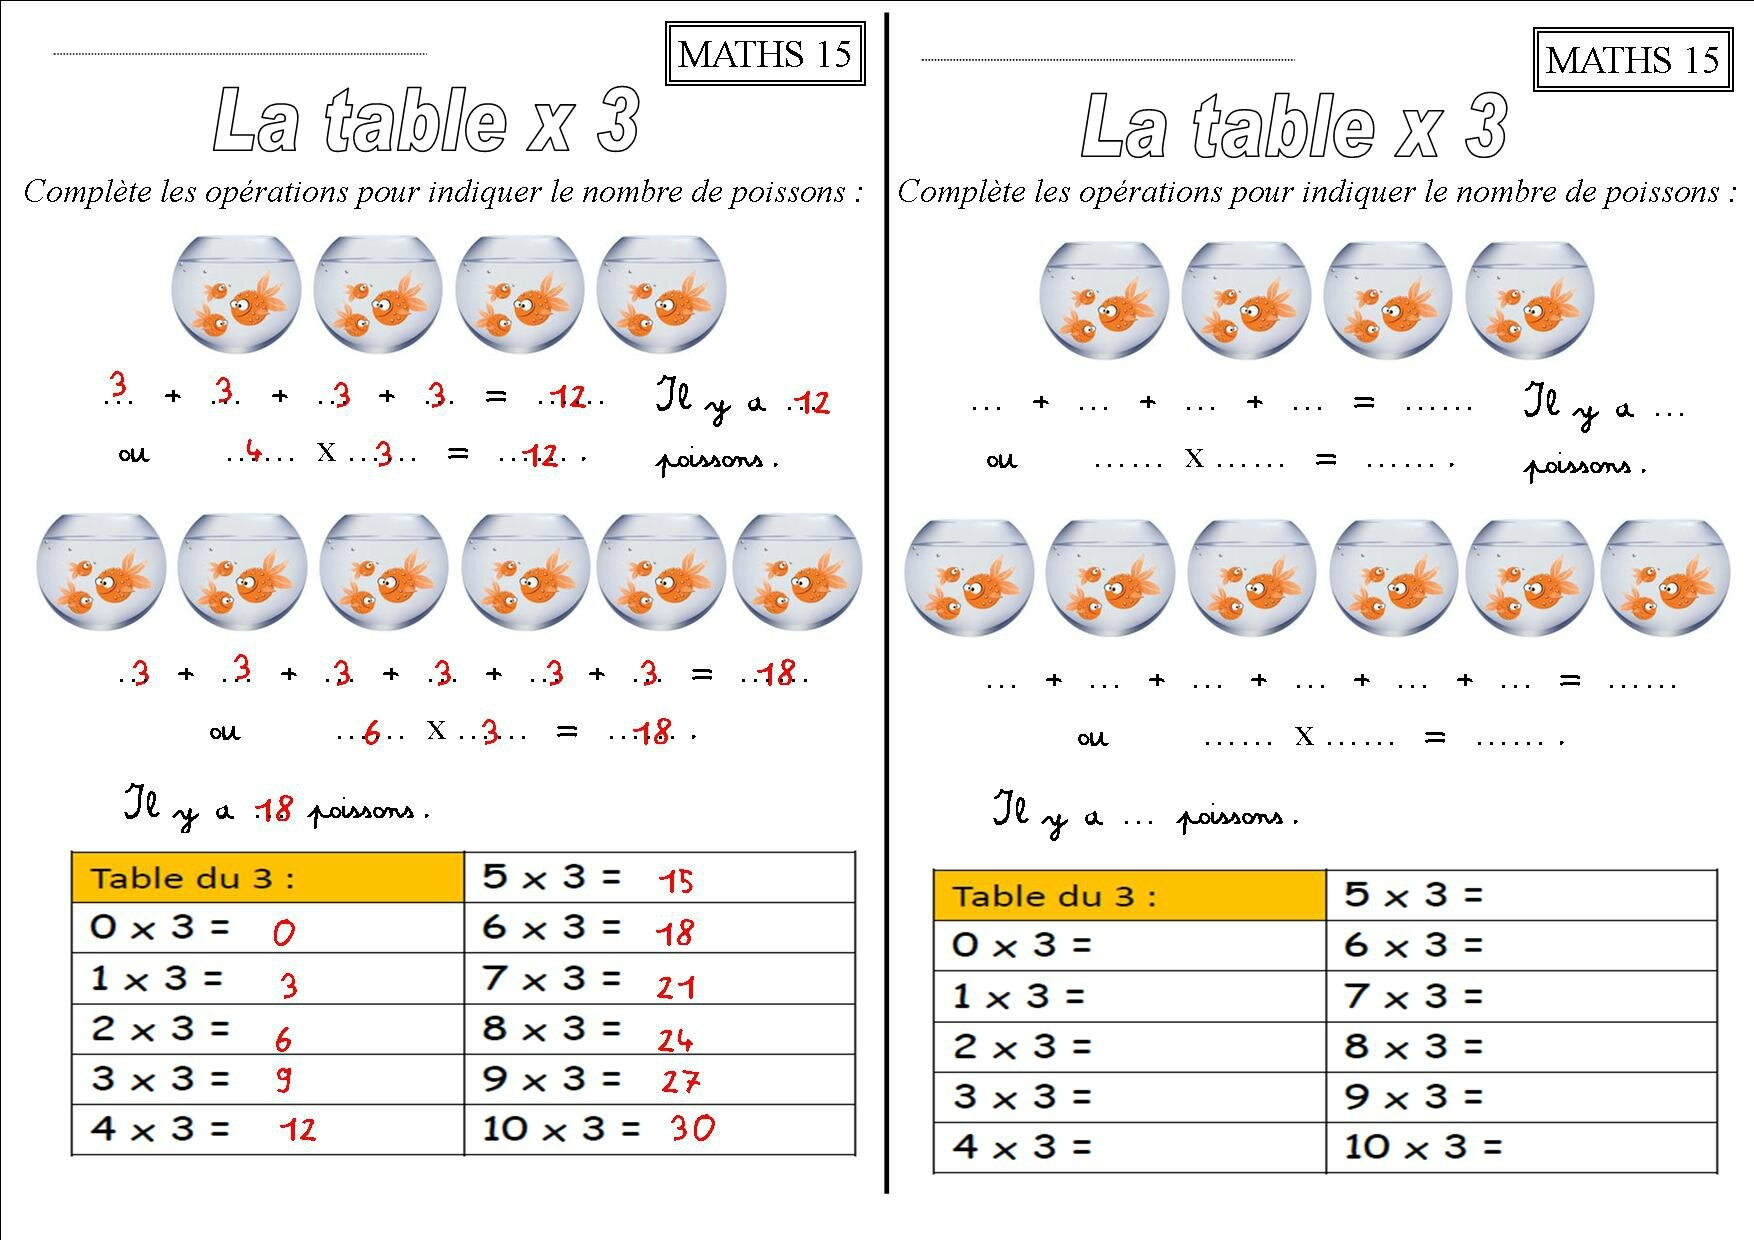 Exercice de table de multiplication 2 3 4 5 6 exercices tables de multiplication 2 3 4 5 - Table de multiplication par 4 ...